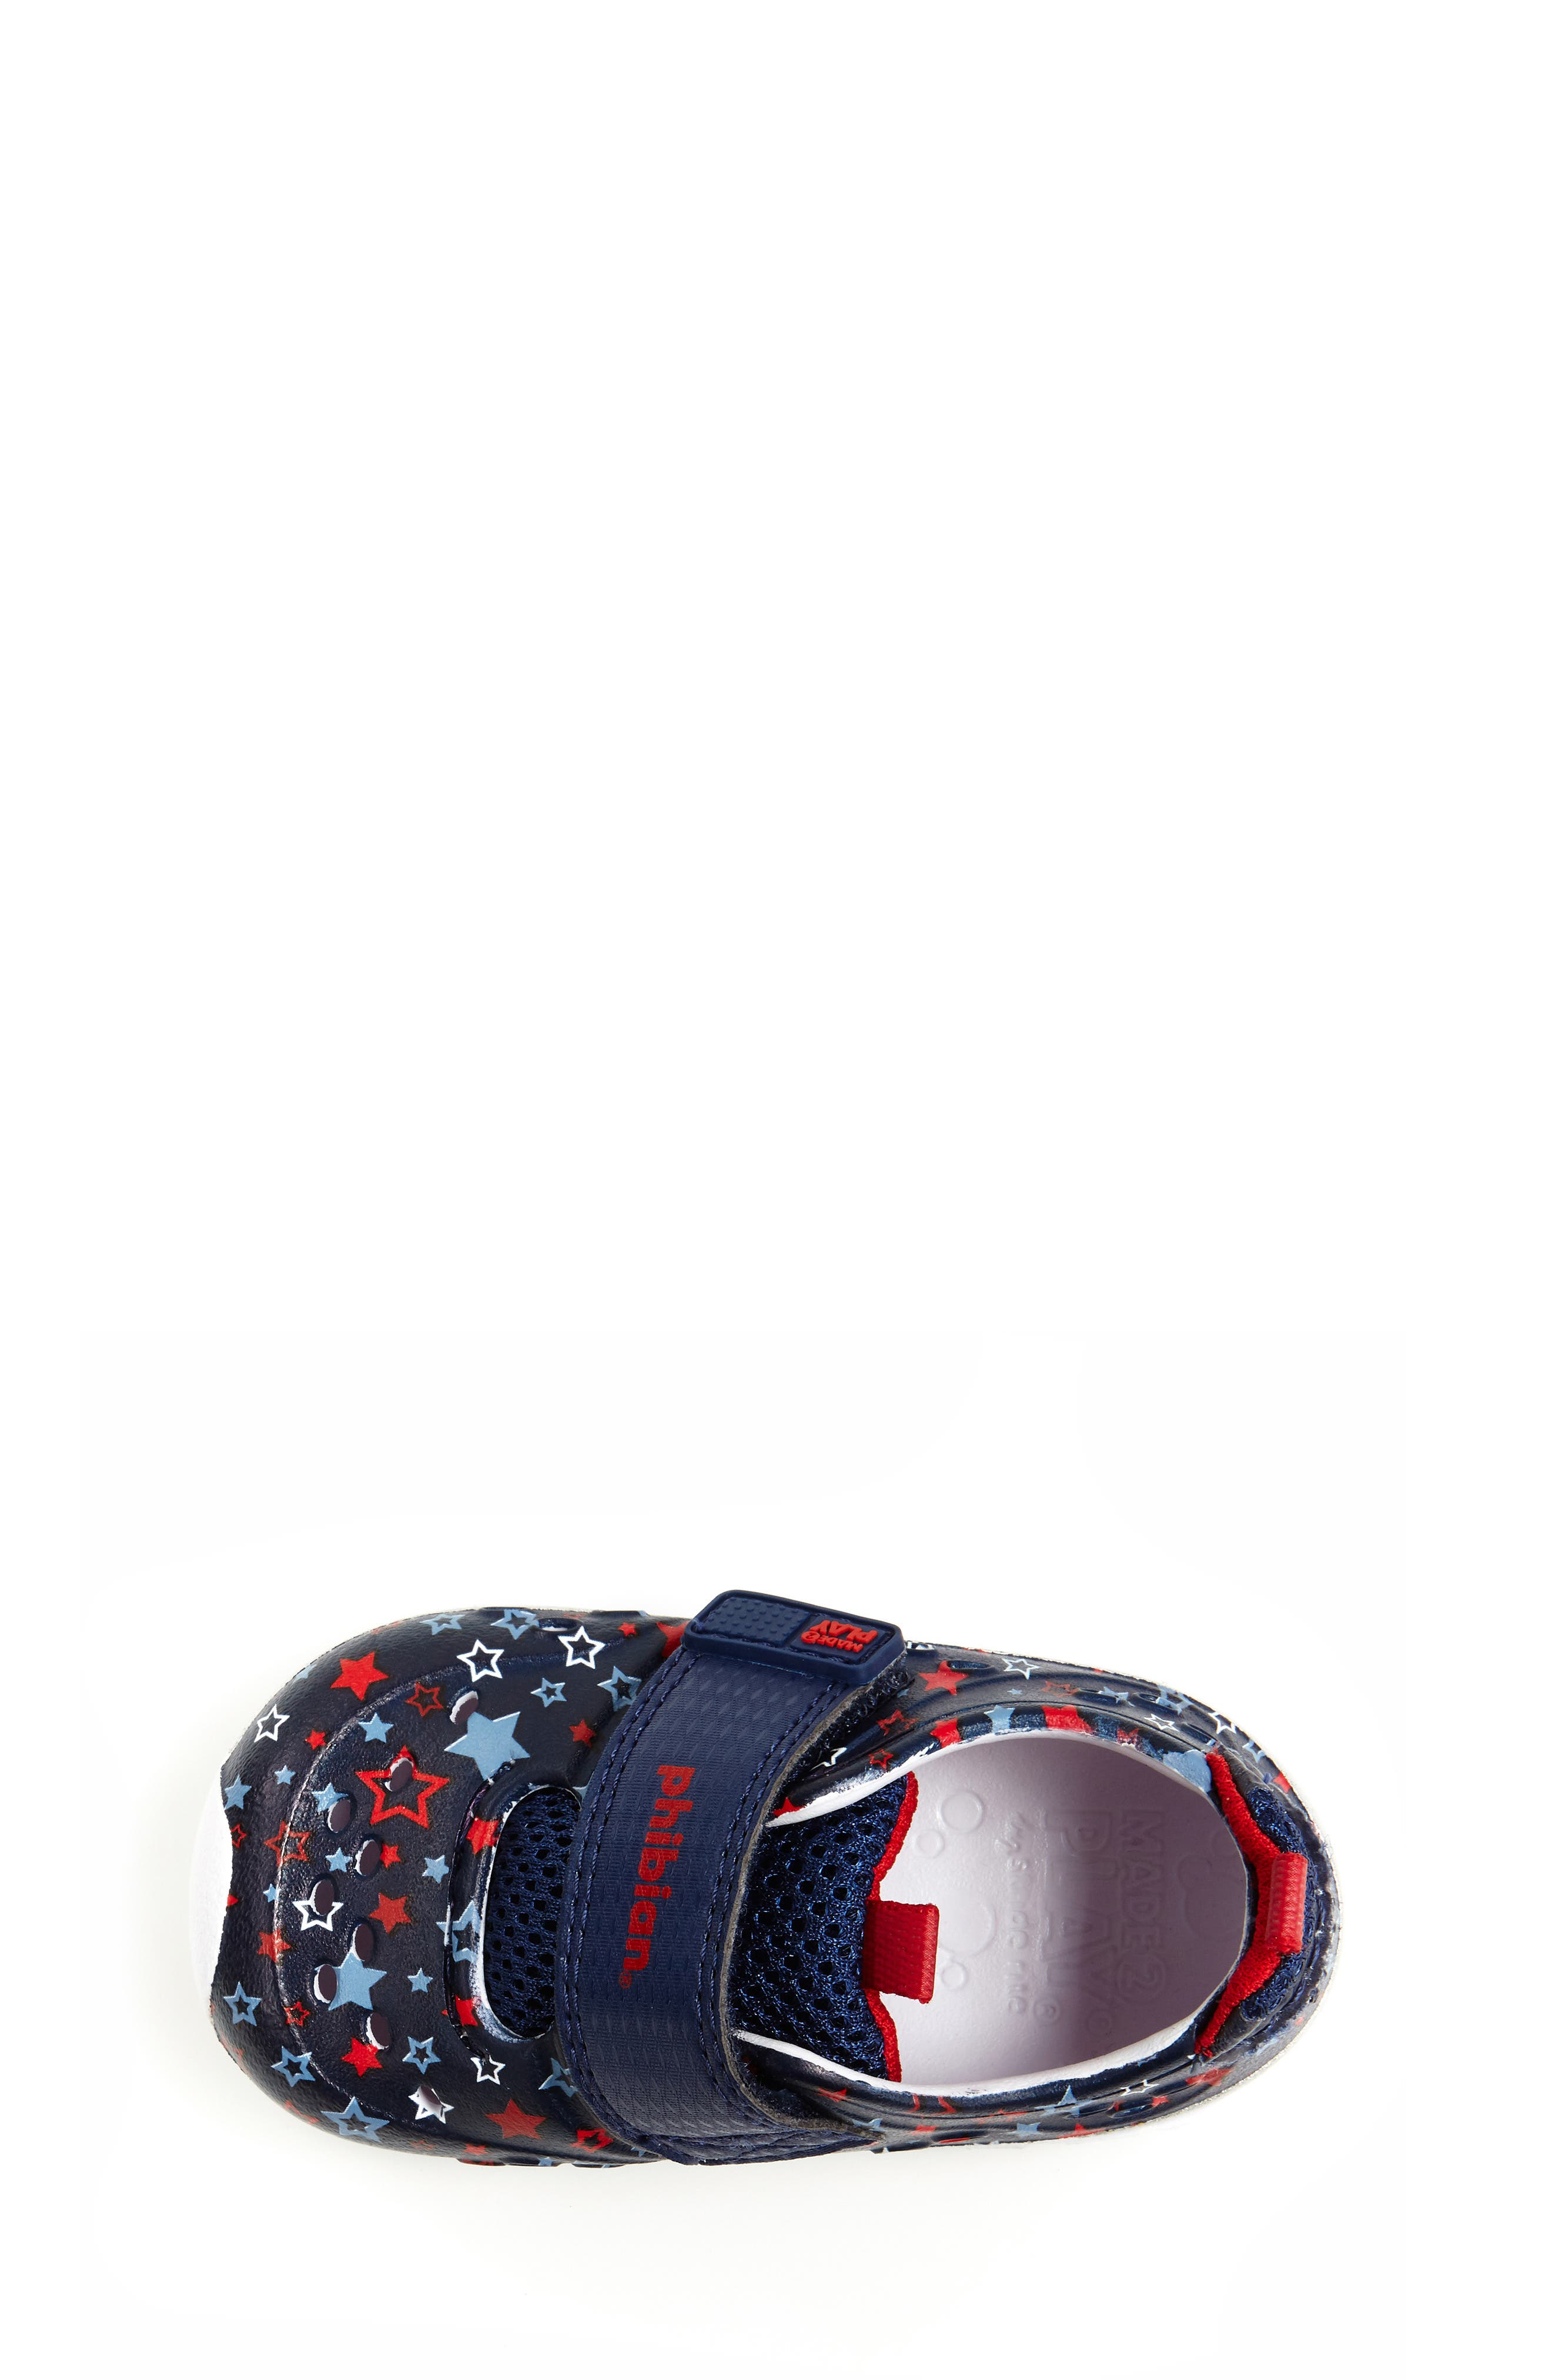 STRIDE RITE, Made2Play<sup>®</sup> Phibian Sneaker, Alternate thumbnail 5, color, NAVY STAR